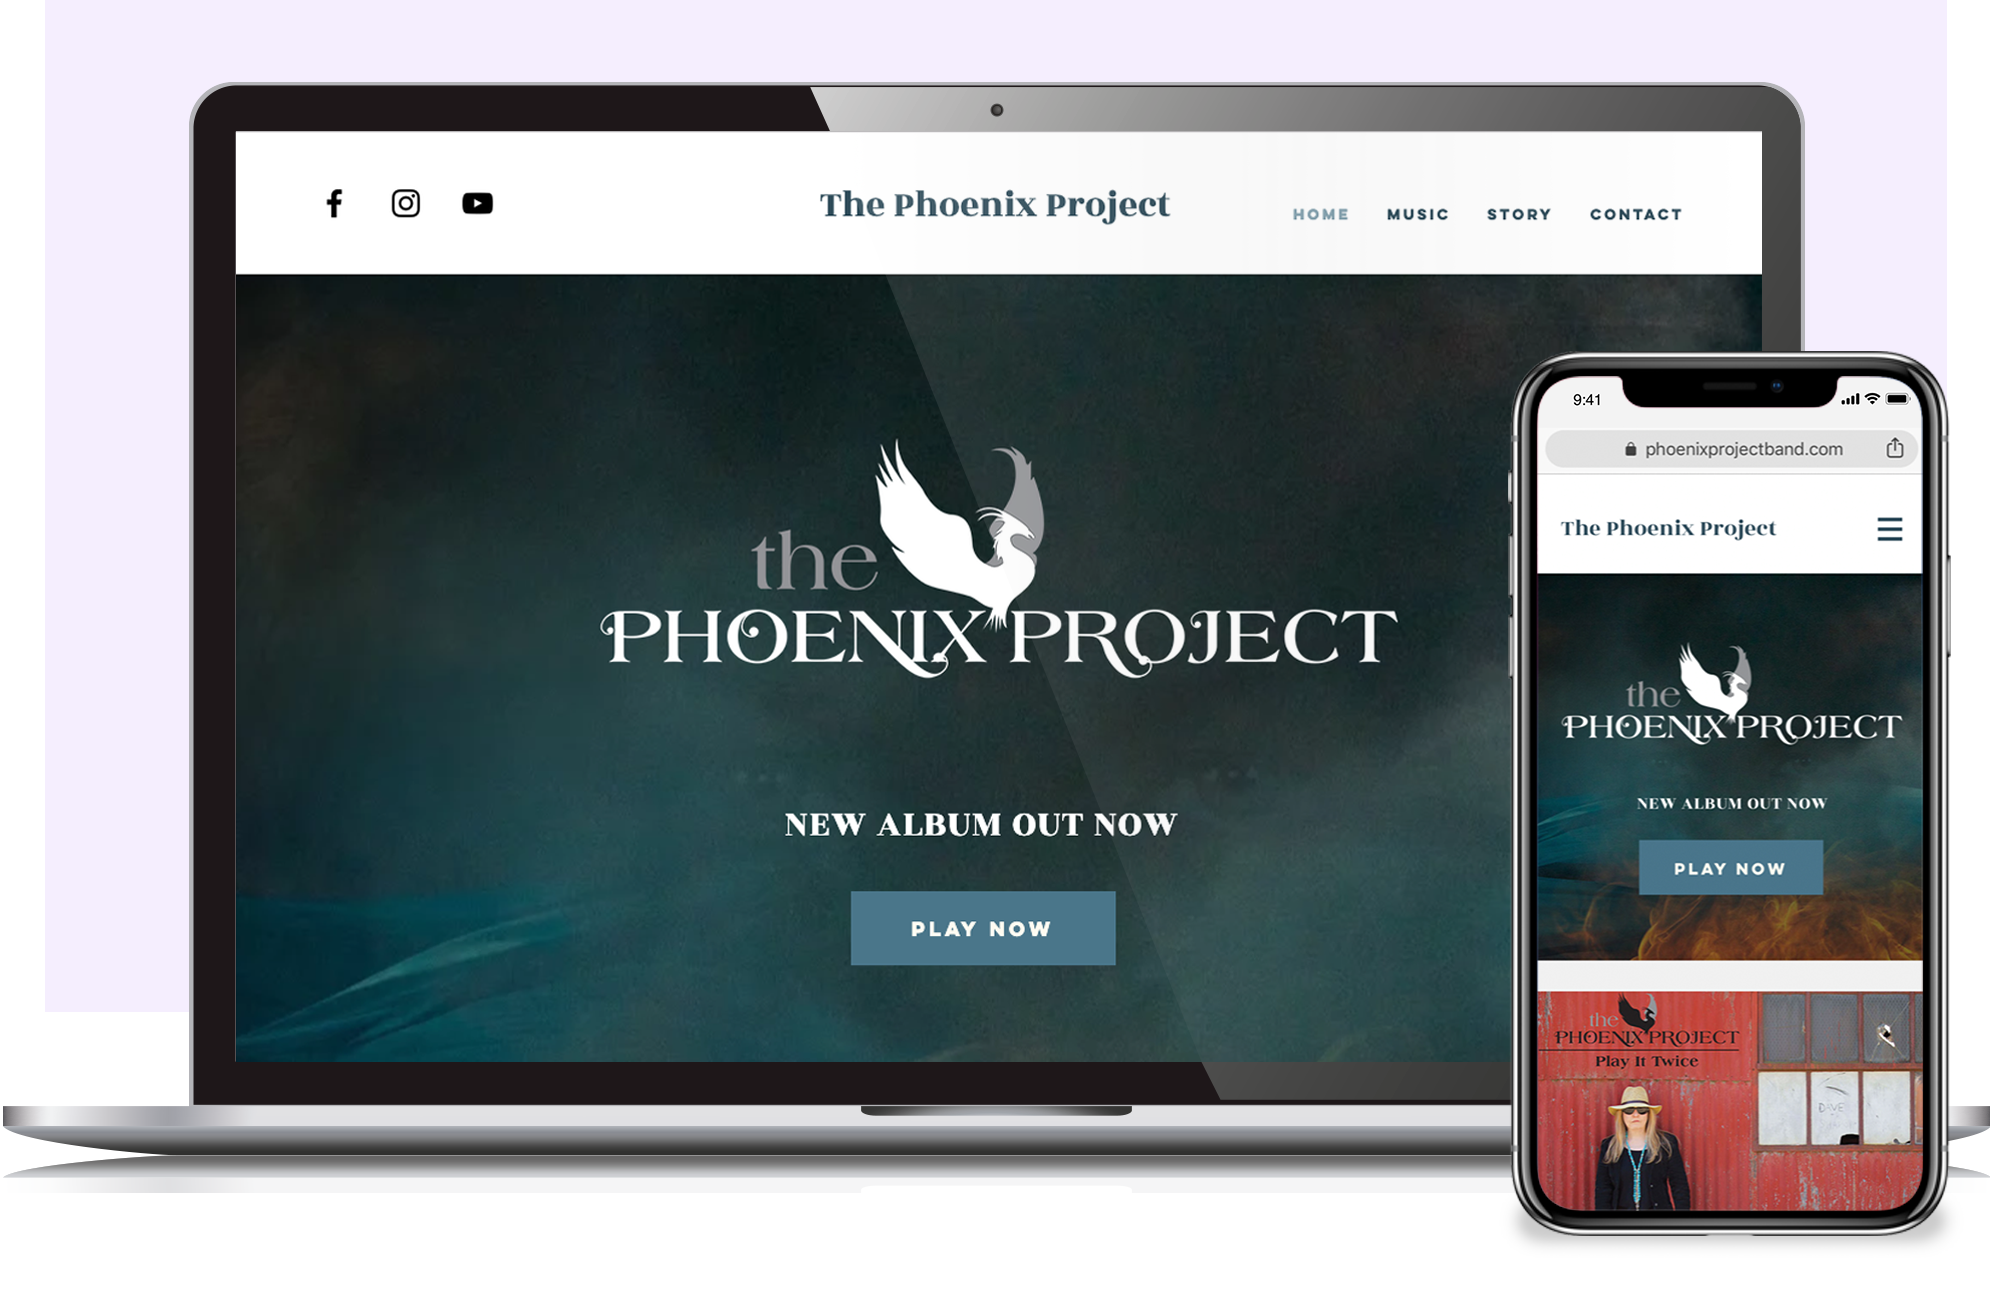 The Phoenix Project music website